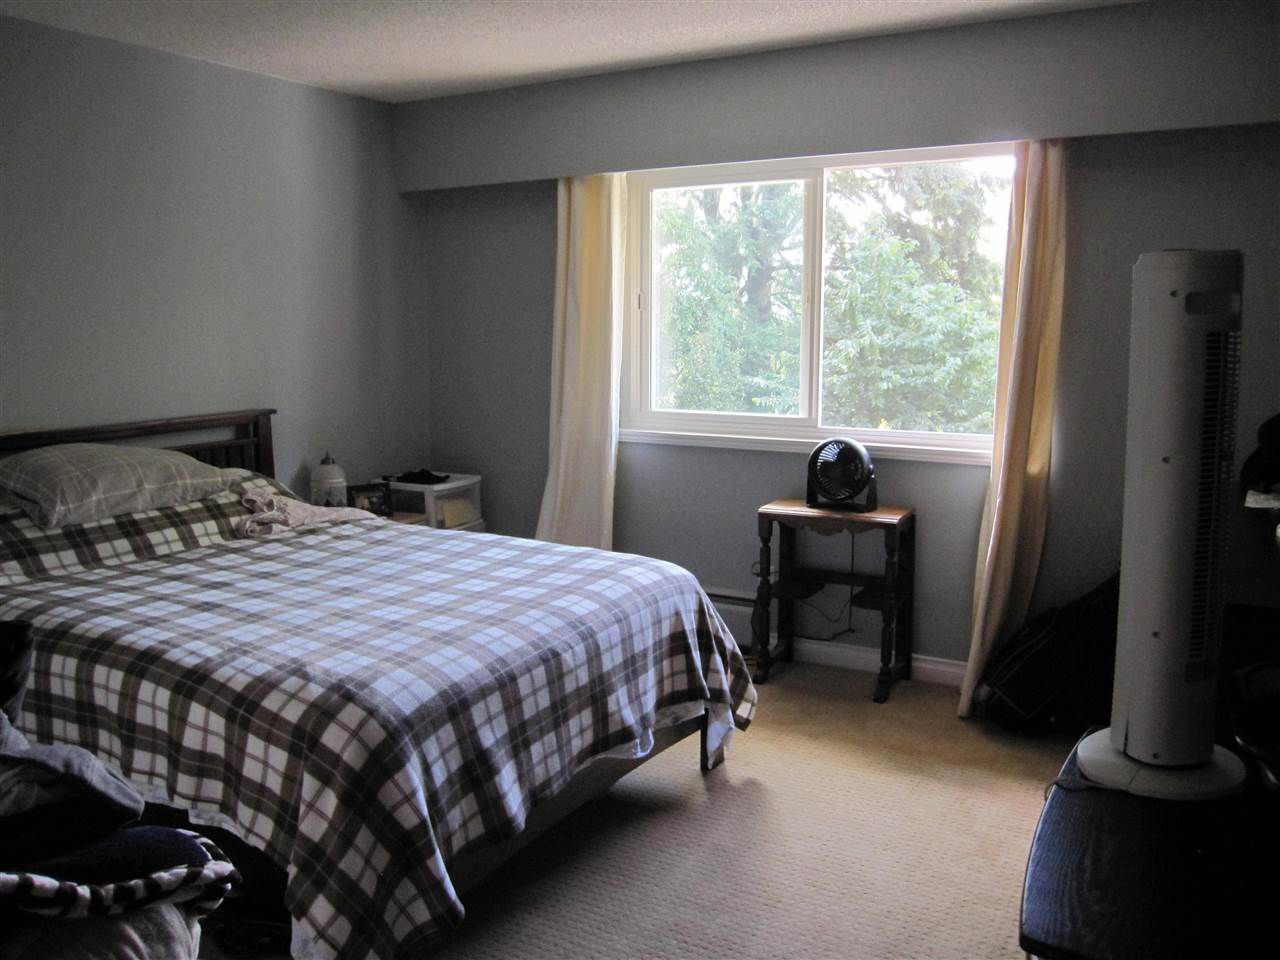 Main Photo: 221 7436 STAVE LAKE Street in Mission: Mission BC Condo for sale : MLS®# R2045100